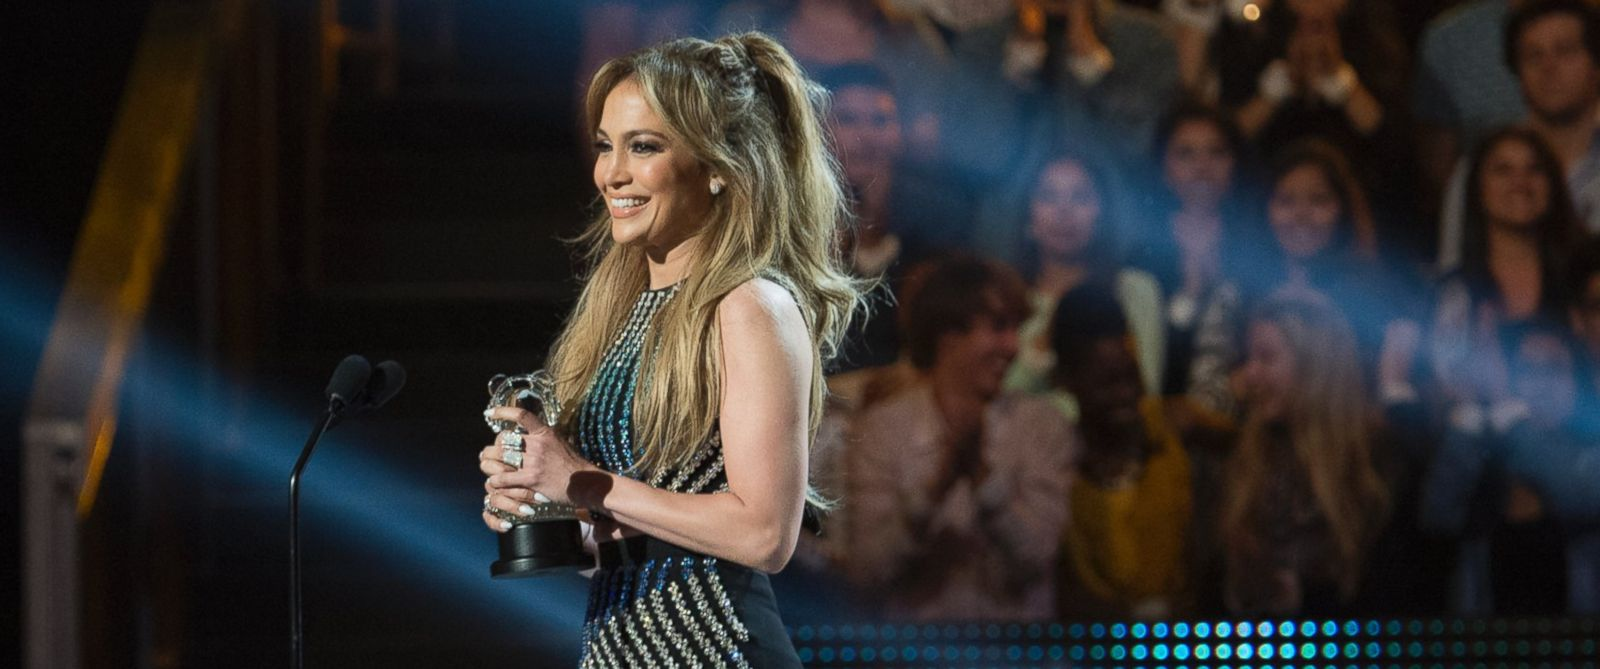 PHOTO: Jennifer Lopez was presented with the Radio Disney Hero Award on April 25, 2015, in recognition of her philanthropic work in the U.S. and around the world.